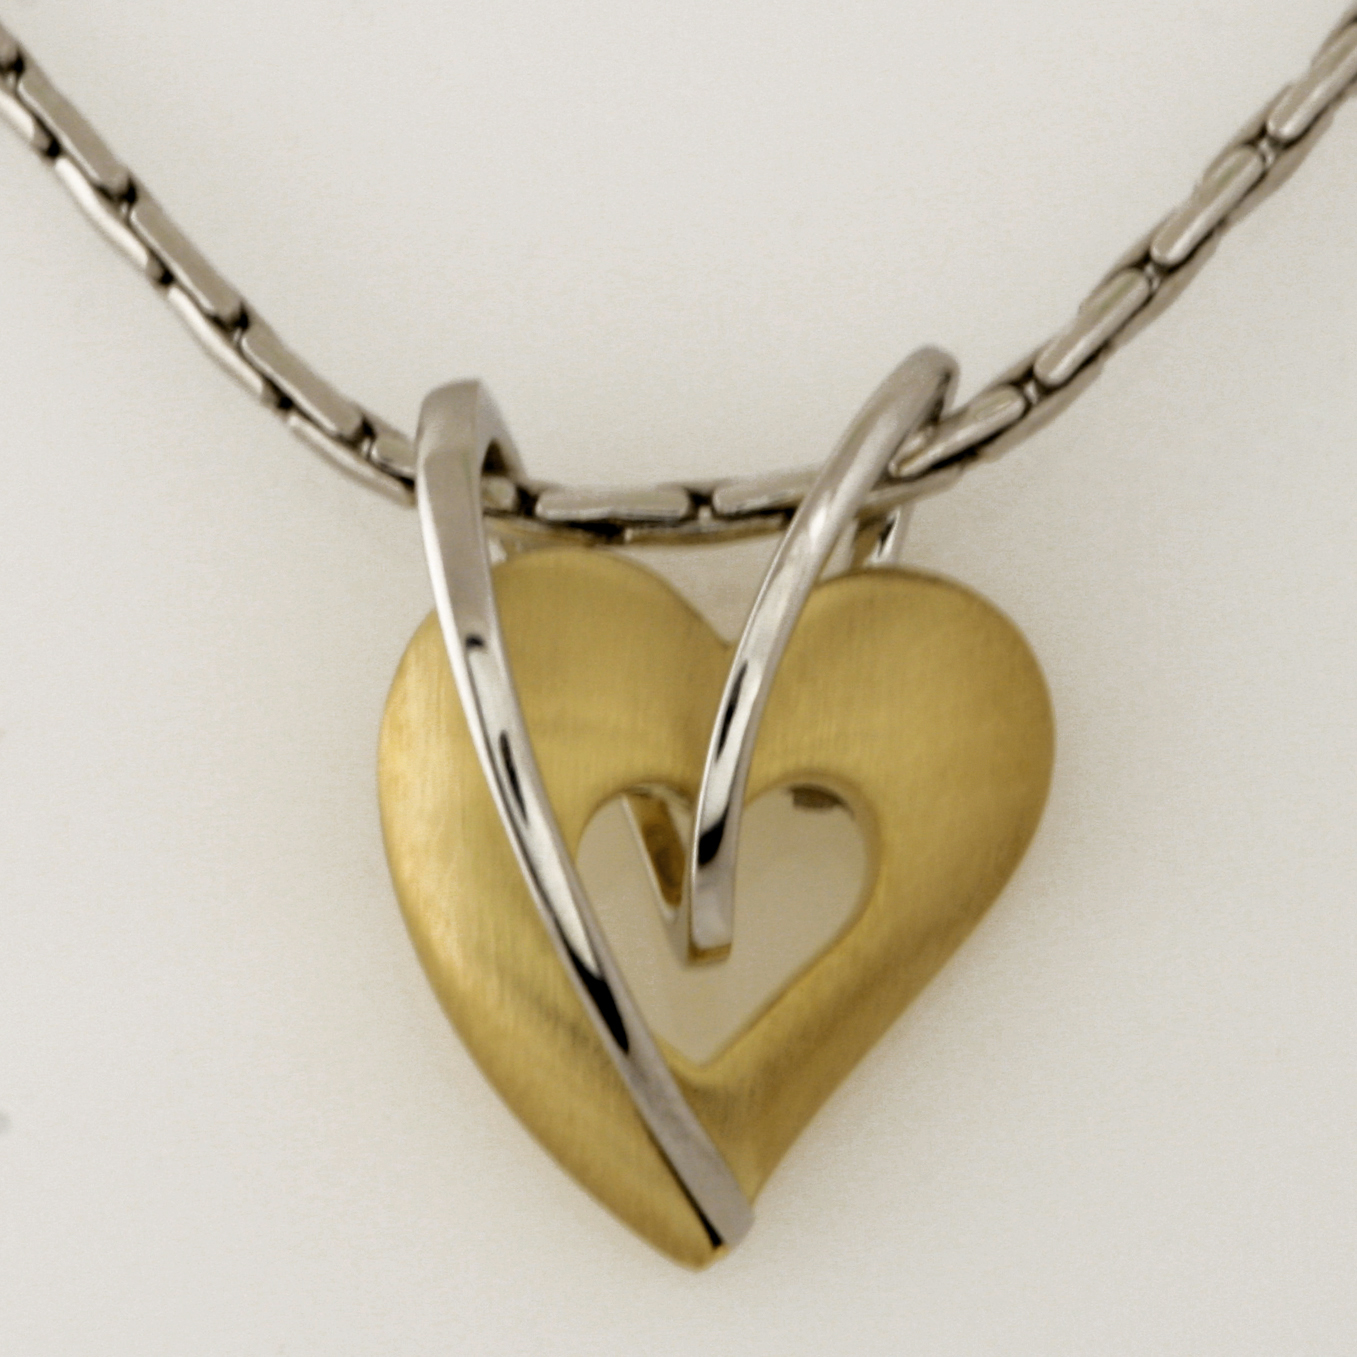 P072 9ct yellow and white gold heart pendant $410